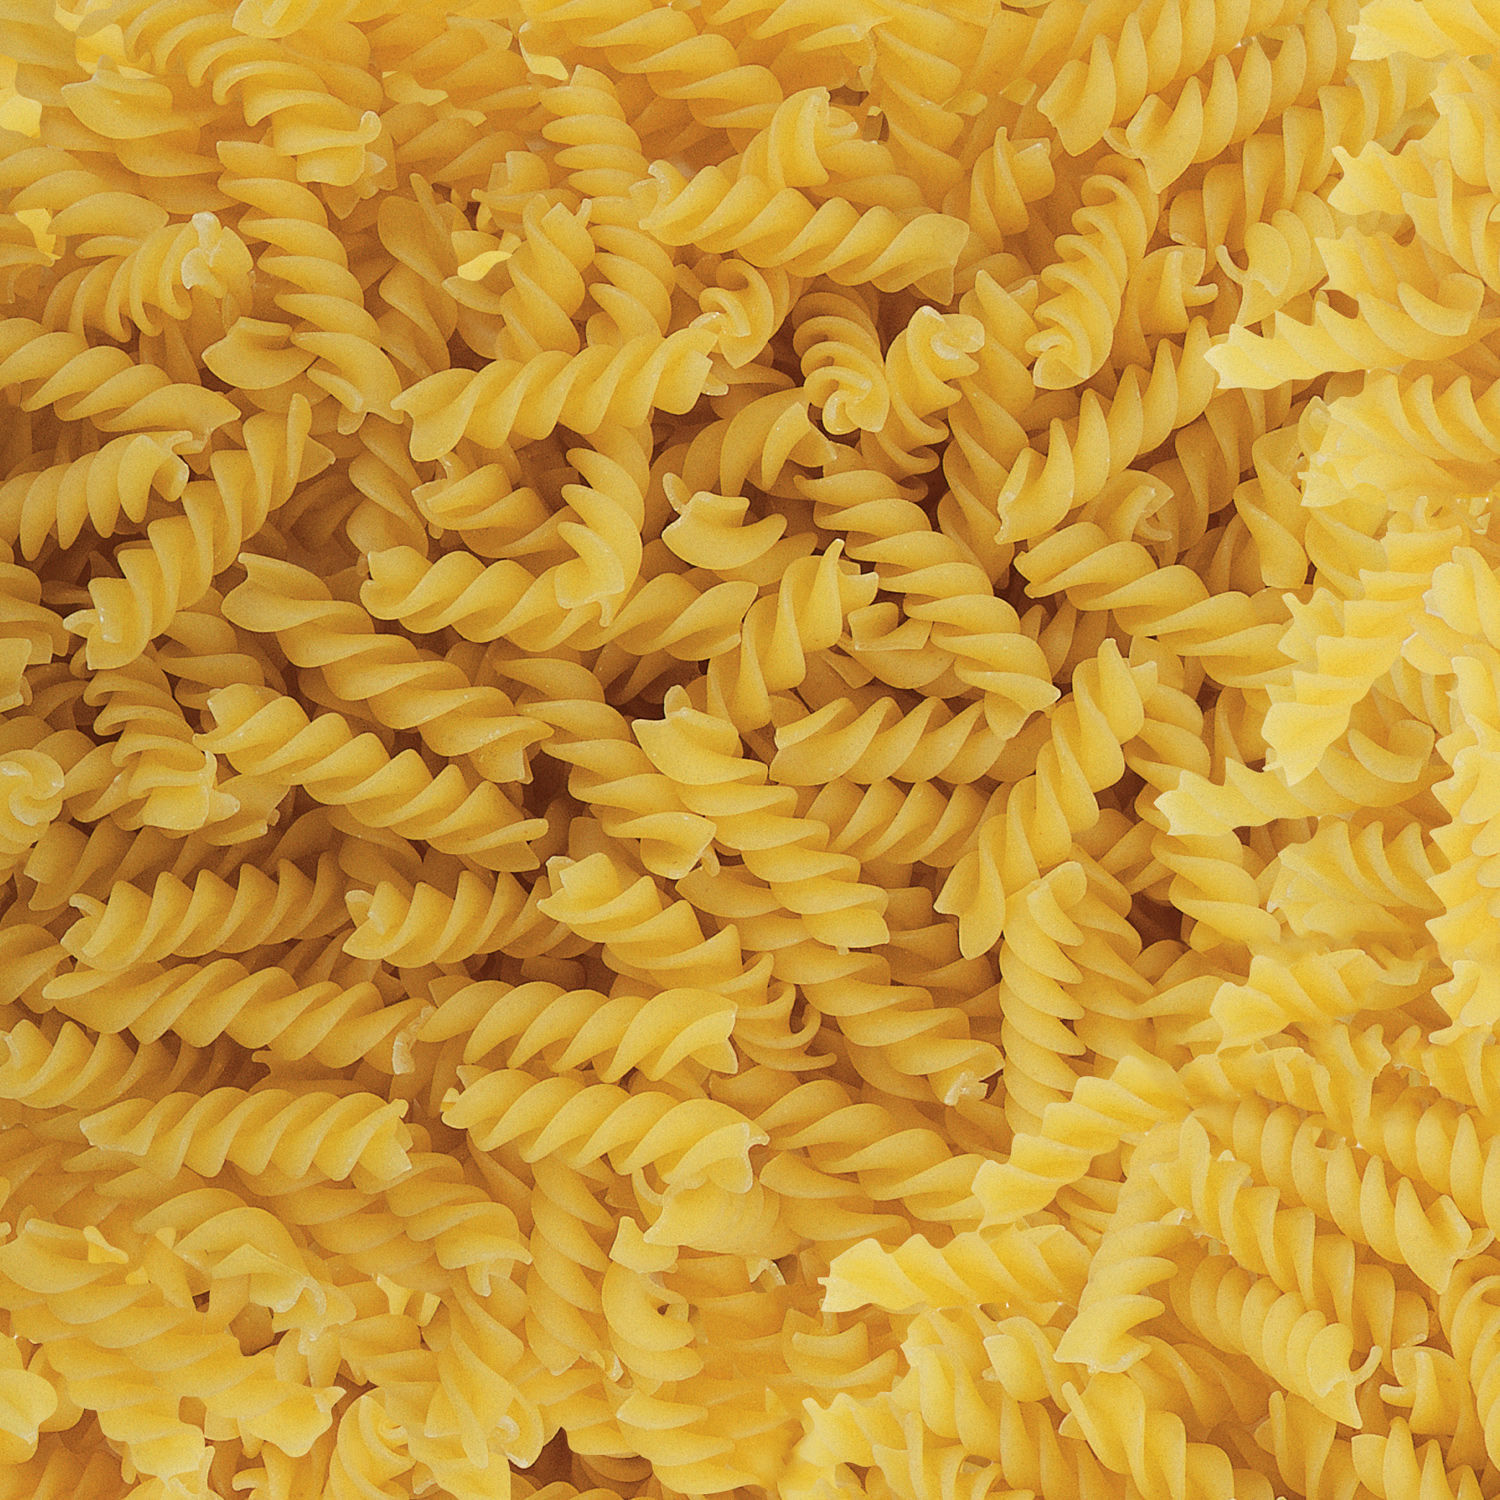 Food Texture Pack Free Pasta Textures High Resolution